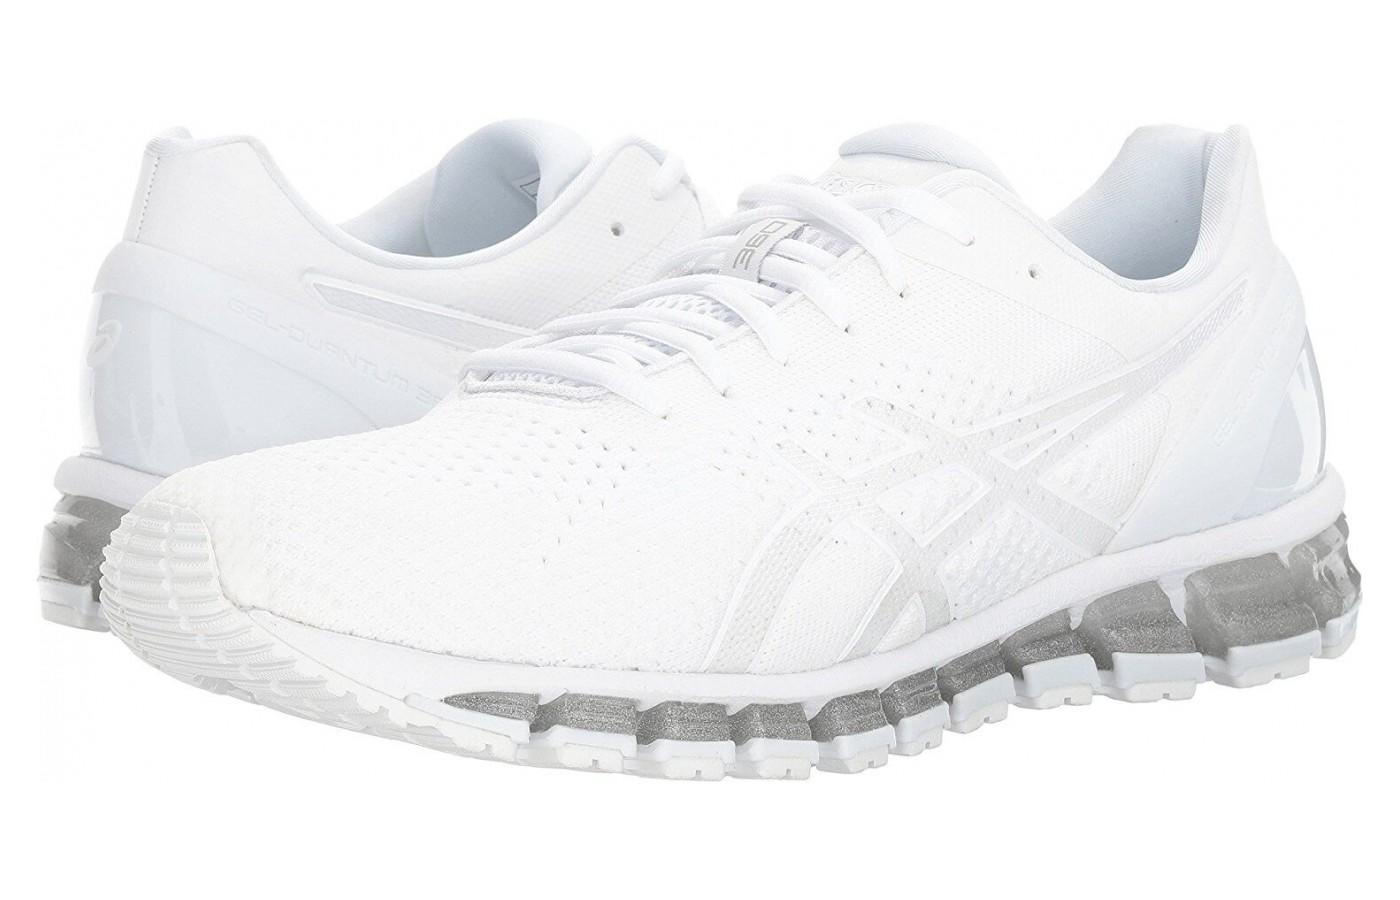 The Asics Gel Quantum 360 Knit has gel cushioning in both the rearfoot and forefoot